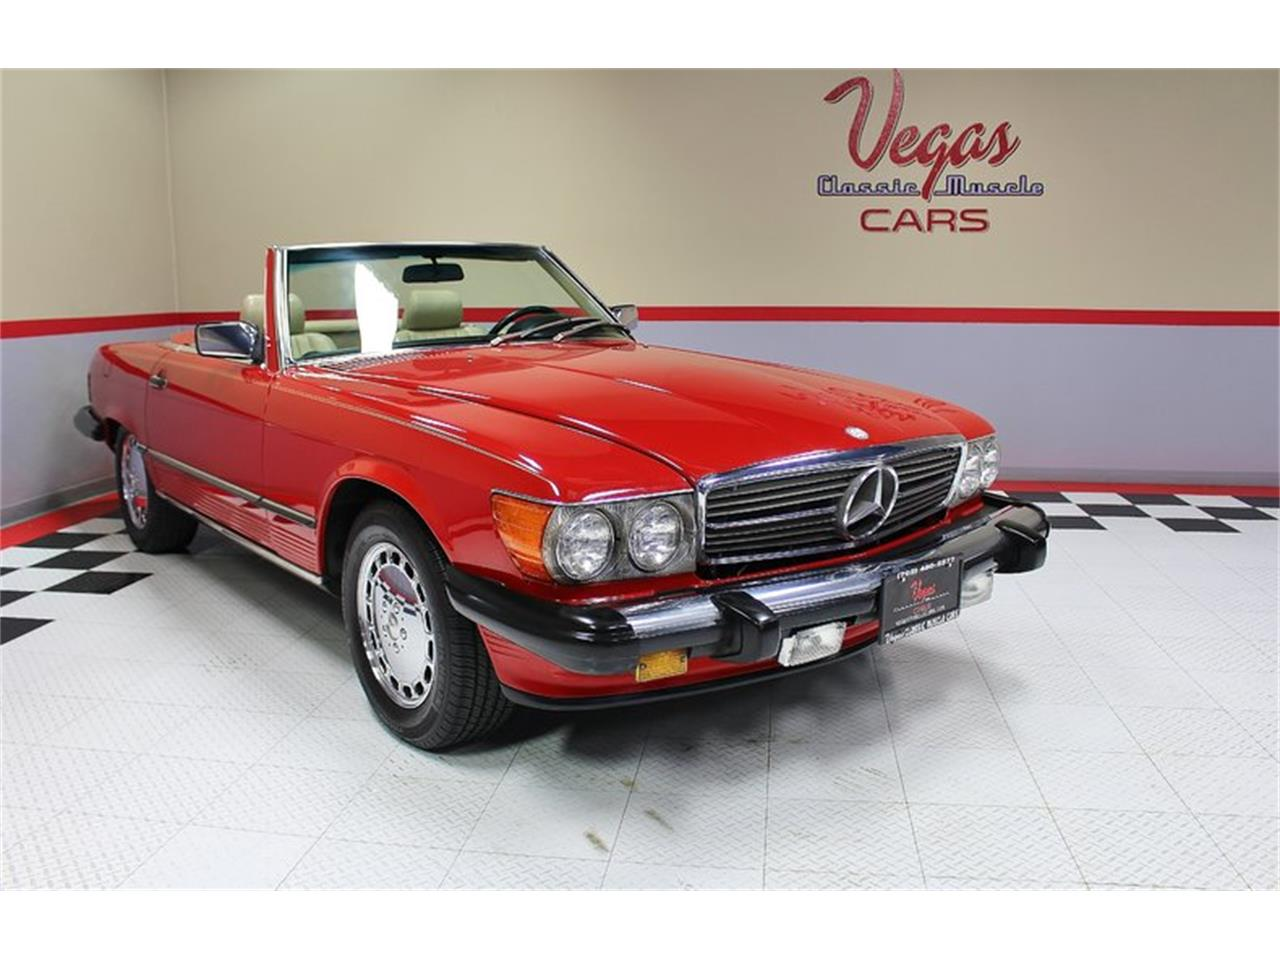 Large Picture of '87 Mercedes-Benz 560SL located in Nevada Offered by Vegas Classic Muscle Cars - KVCP